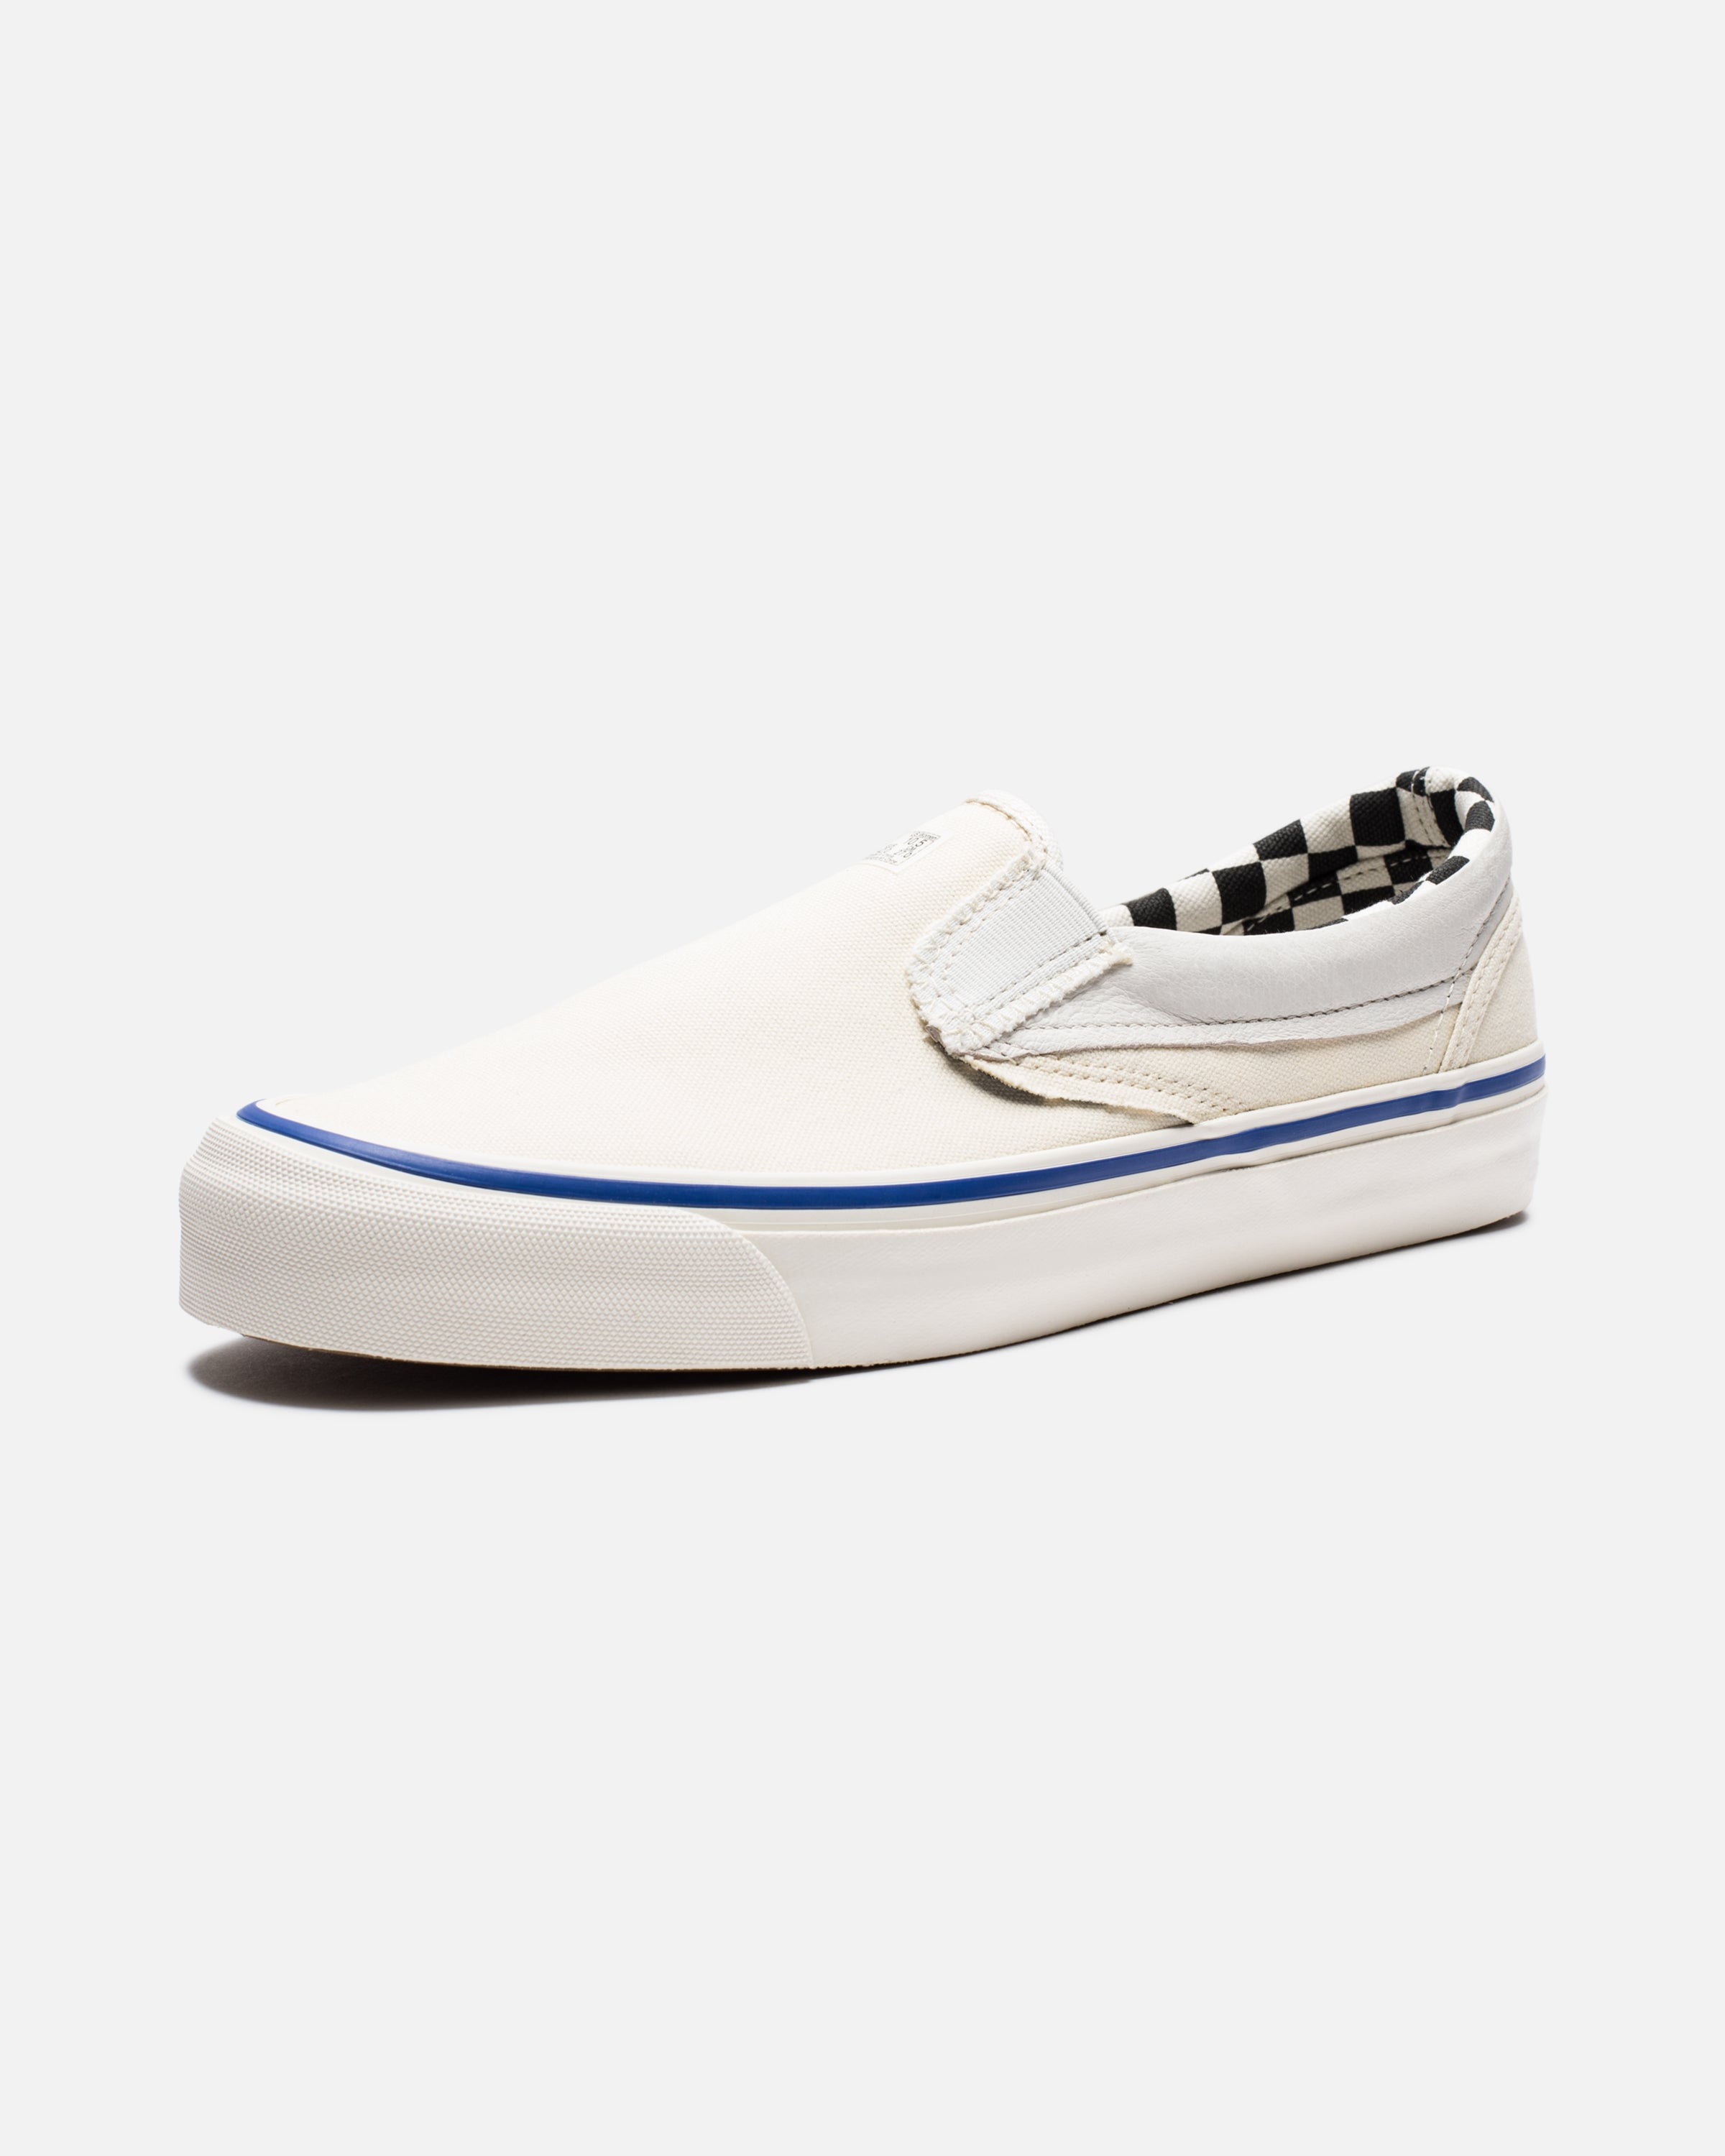 OG CLASSIC SLIP-ON (INSIDE OUT) - CHECKERBOARD  50d6140aa